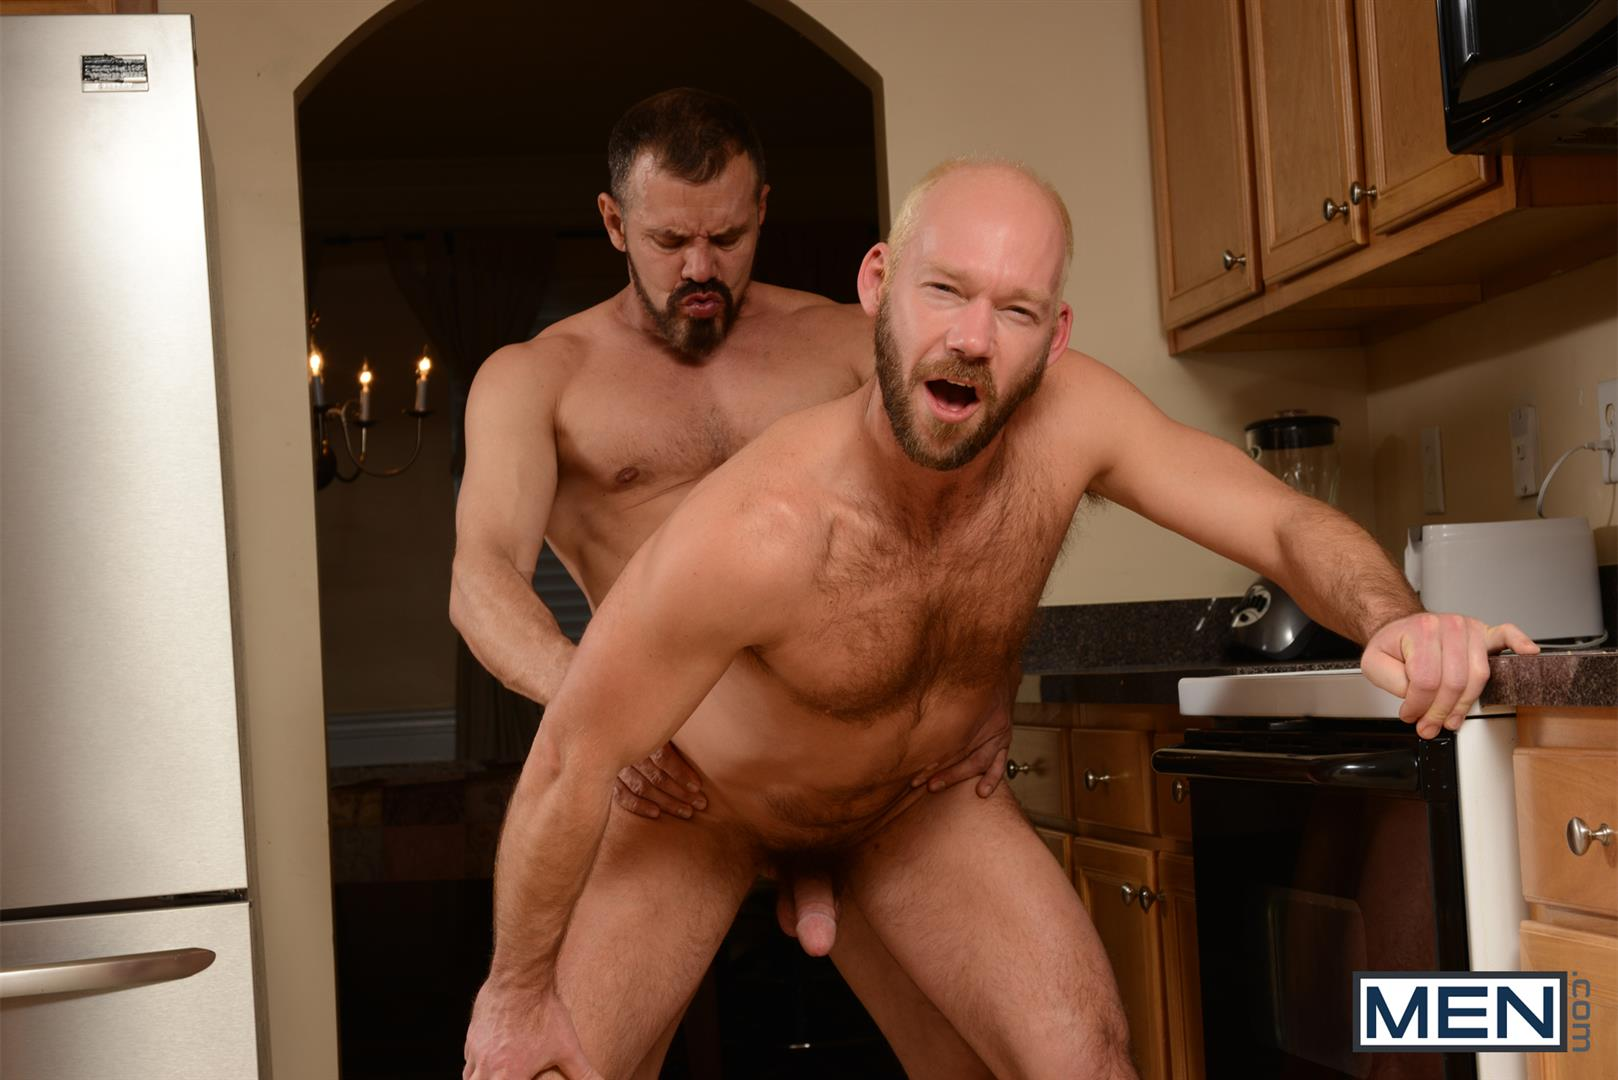 Men Drill My Hole Max Sargent and Mike Tanner Thick Cock Daddys Fucking Amateur Gay Porn 12 Hairy Muscle Daddys Fucking In The Kitchen And Eating Cum